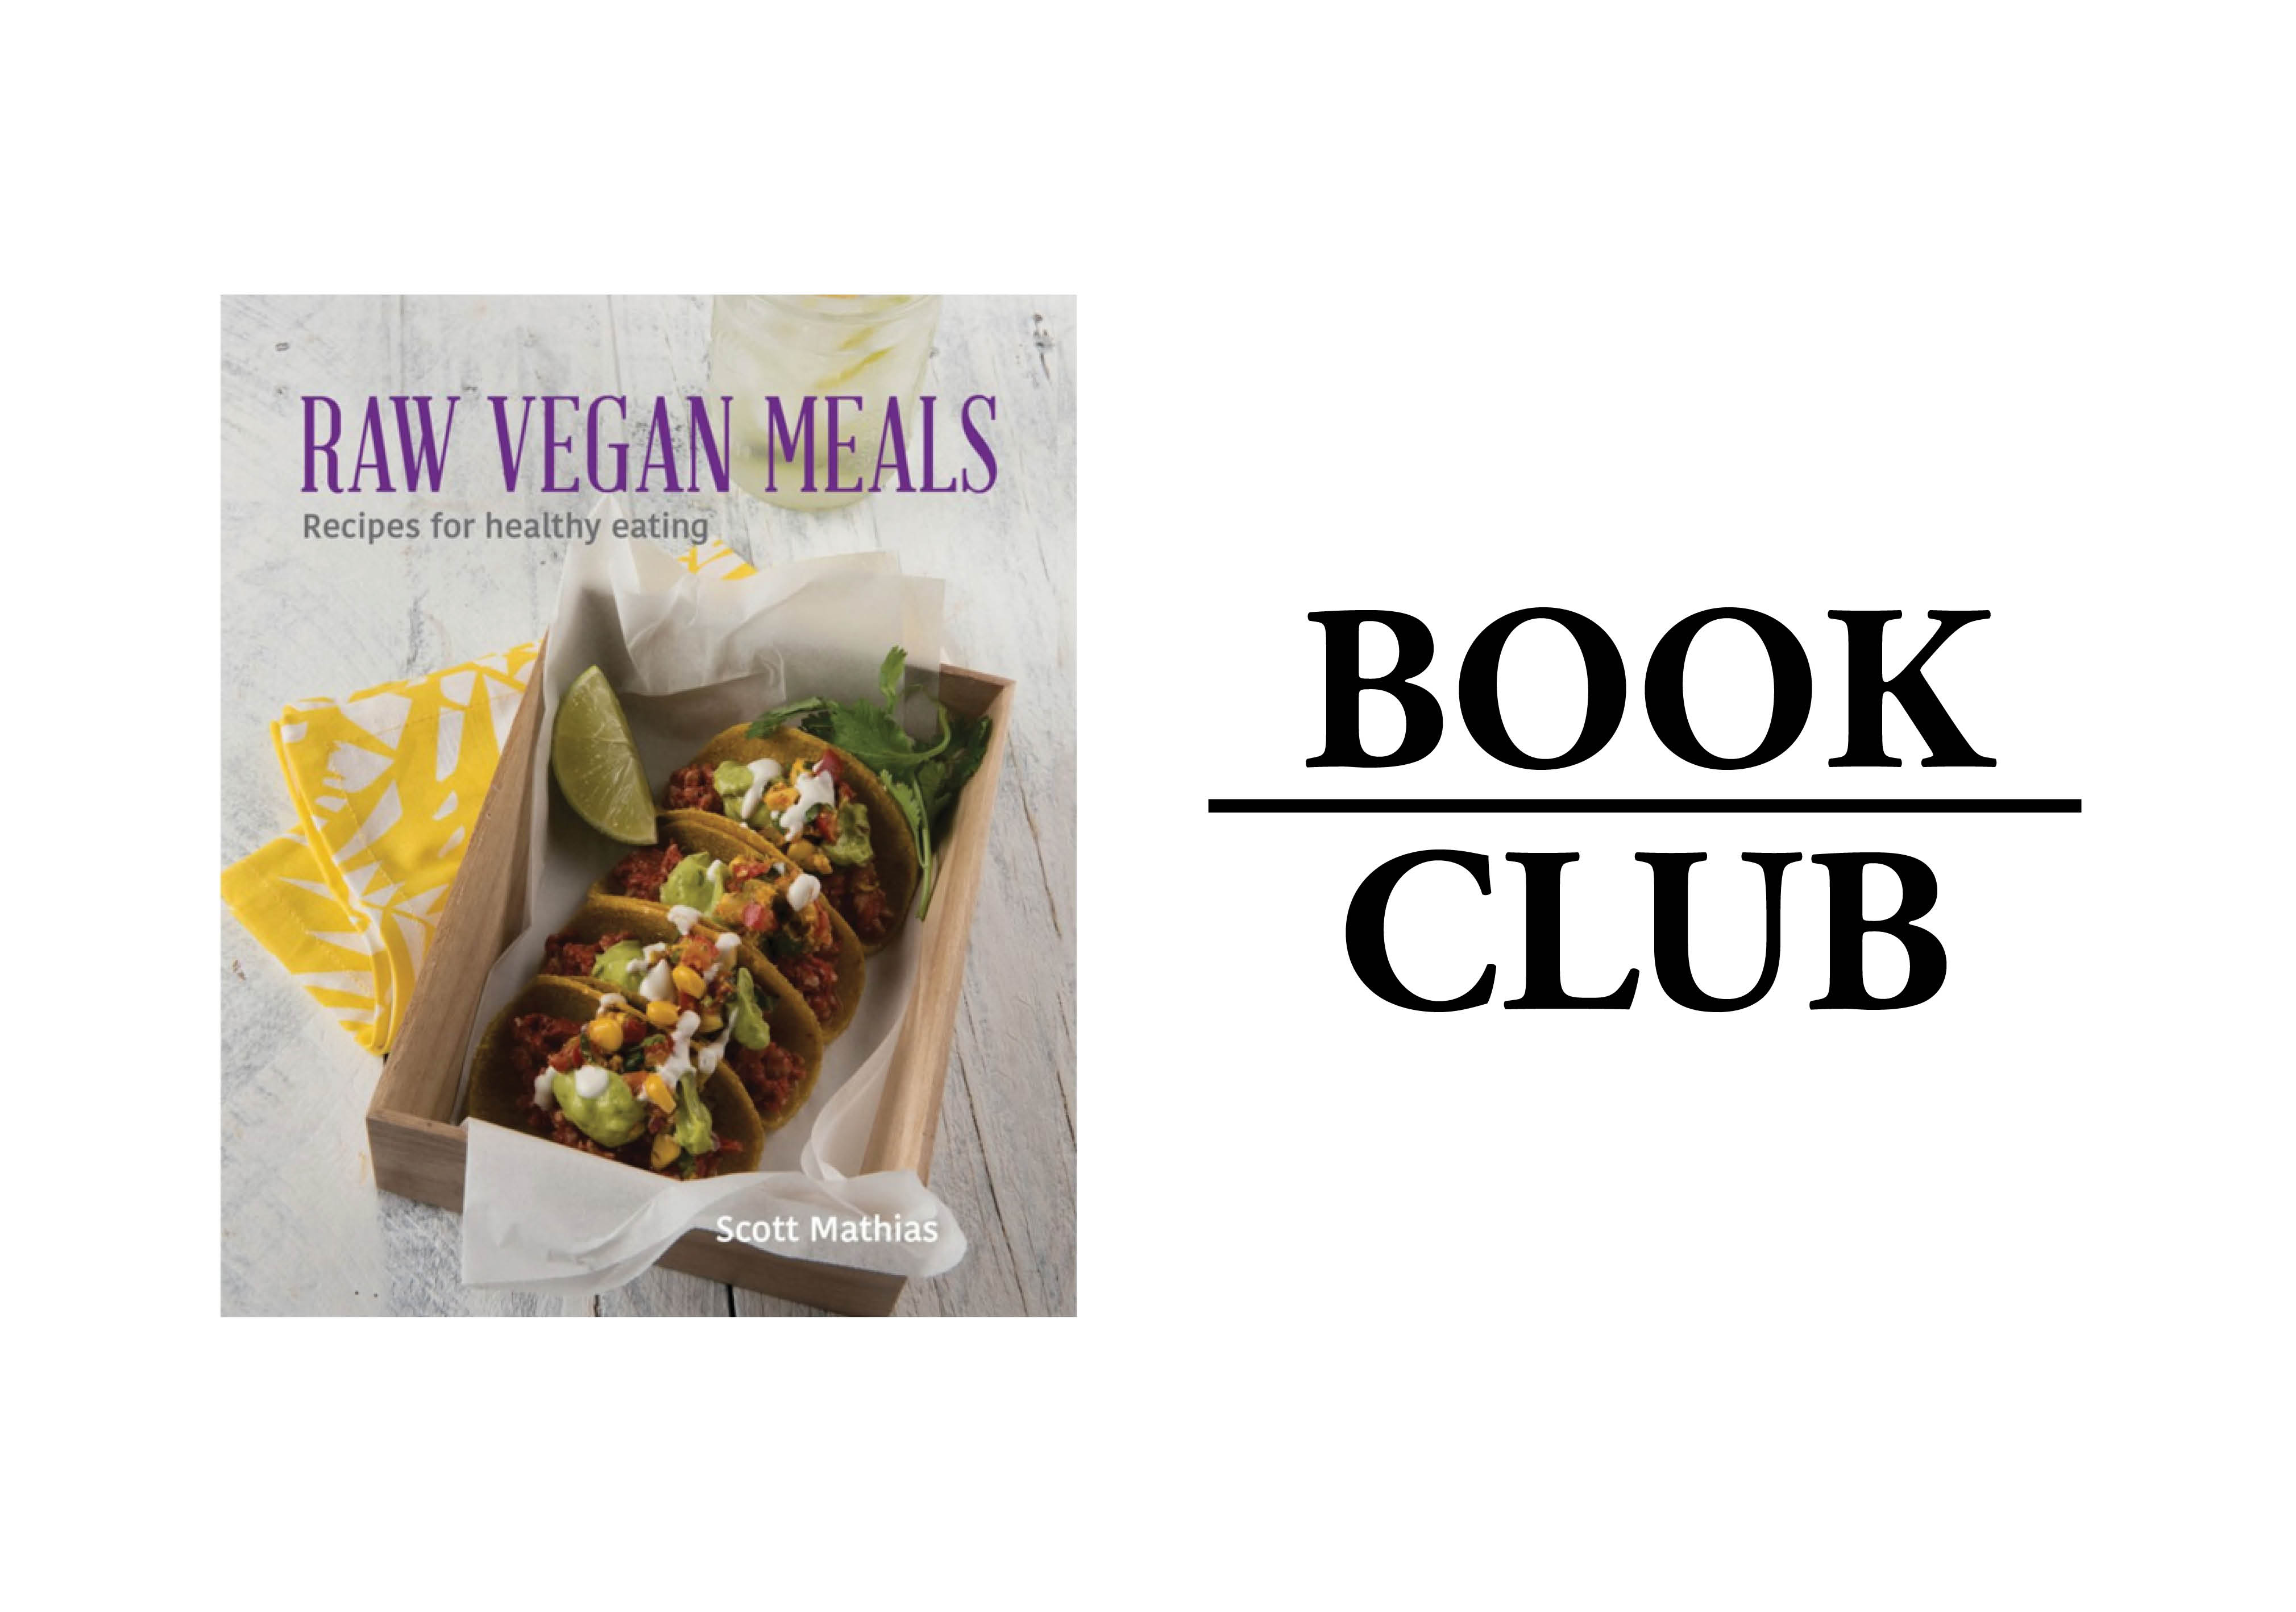 Raw vegan meals restaurant caf after a lifetime of chronic digestive issues scott mathias has wholeheartedly committed to raw vegan food and in his second cookbook shows how to create forumfinder Images